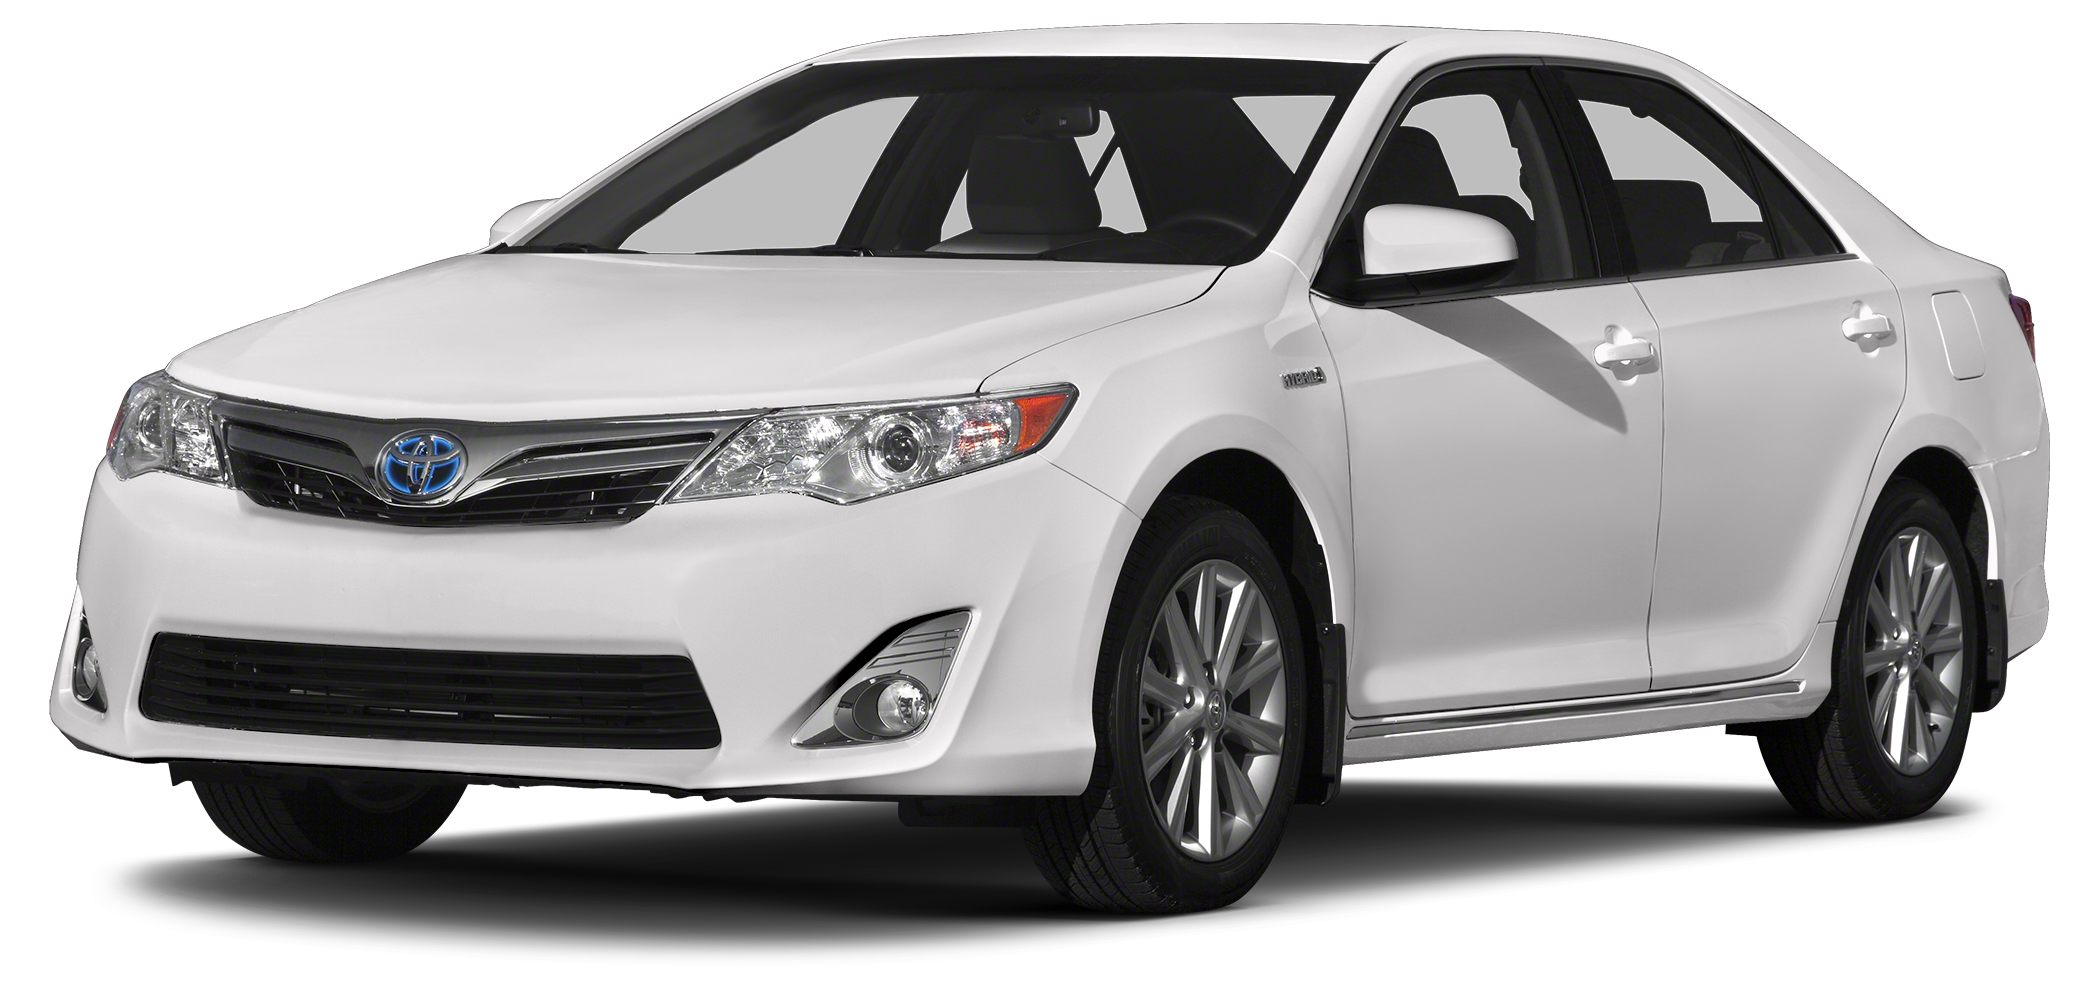 2013 Toyota Camry Hybrid  Here is the opportunity youve been waiting for Climb inside the 2013 T